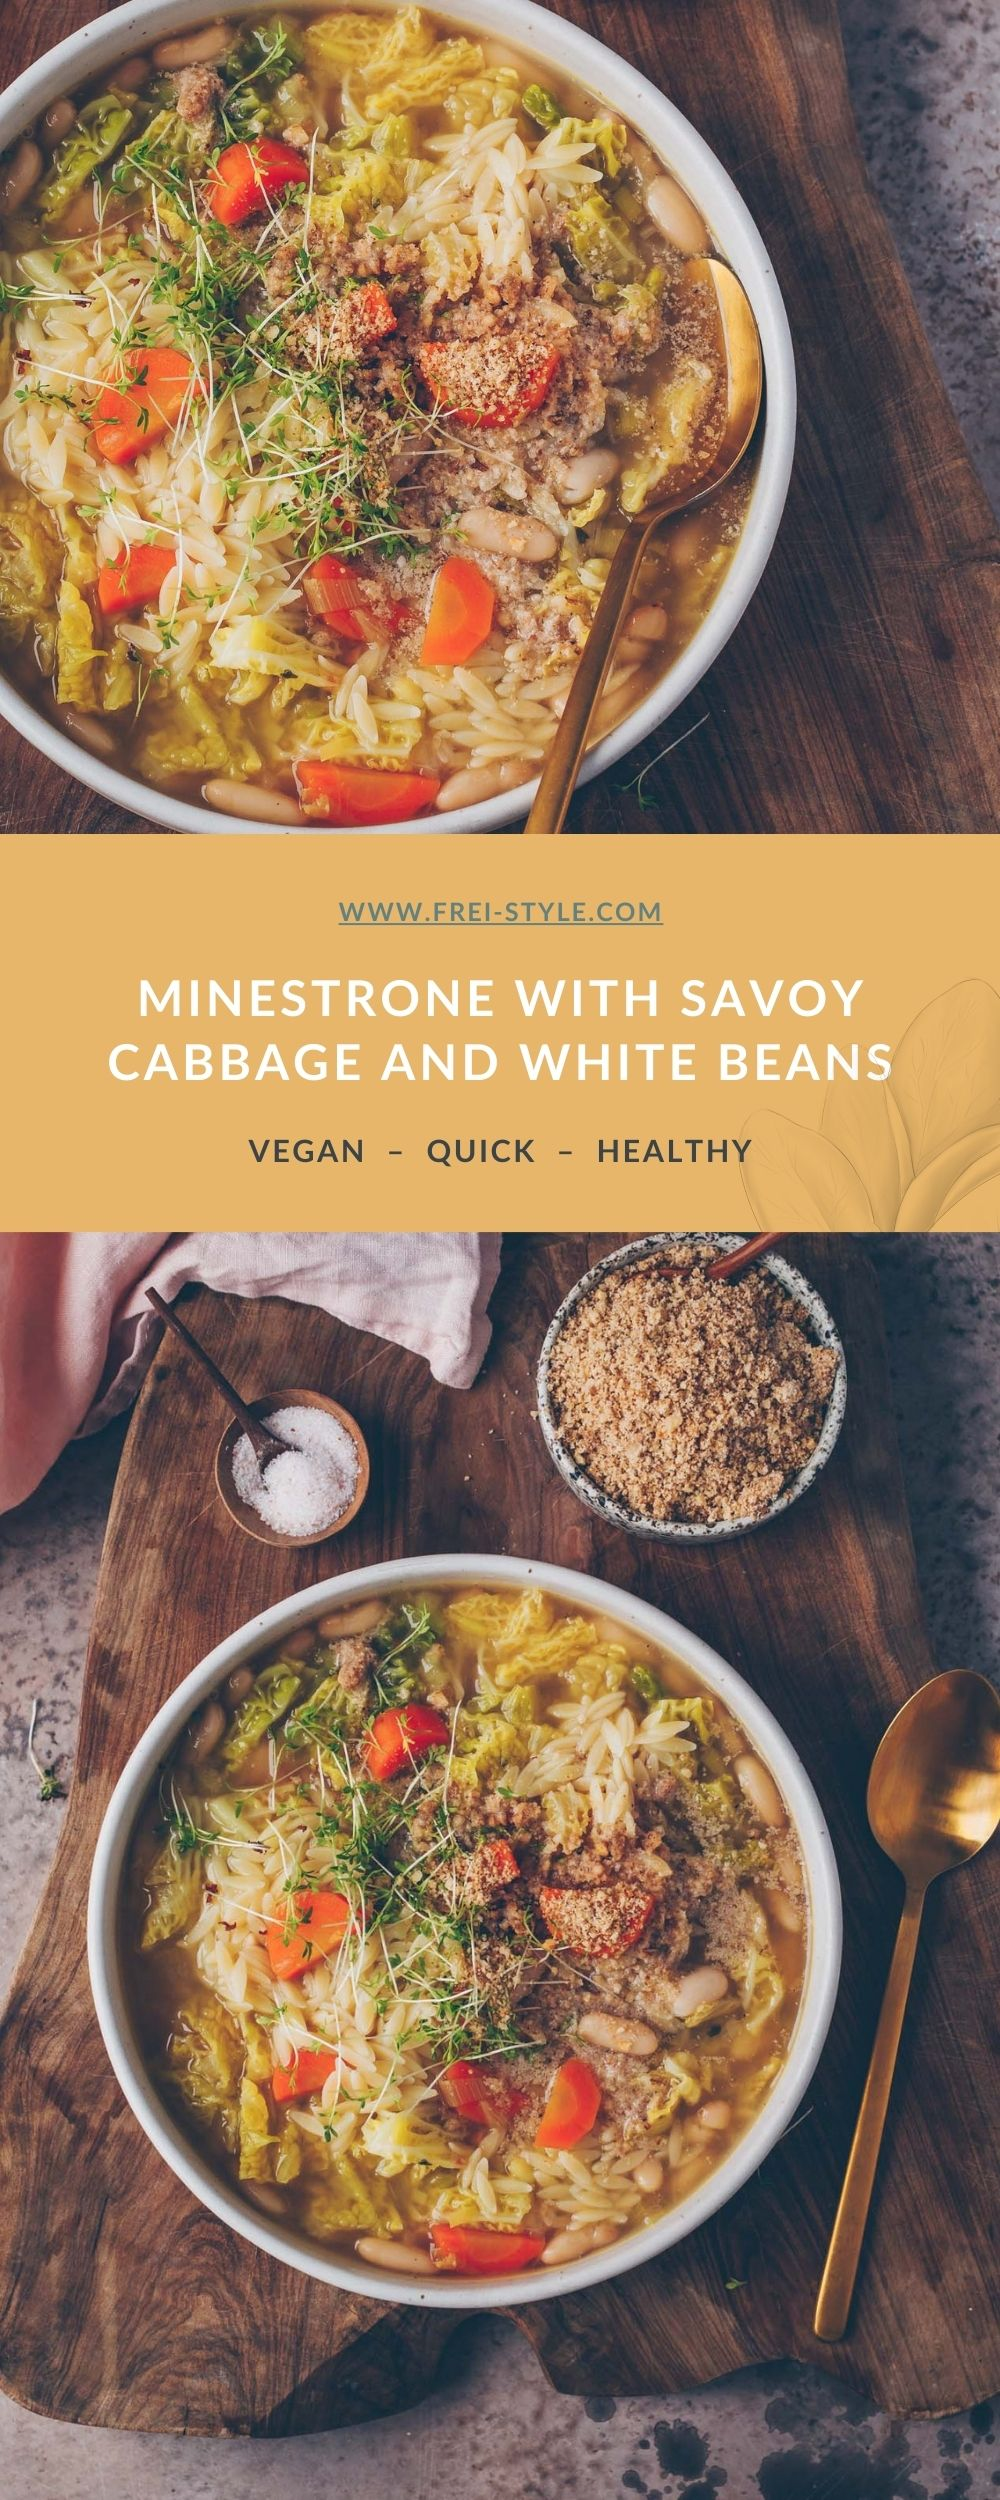 MINESTRONE WITH SAVOY CABBAGE AND WHITE BEANS